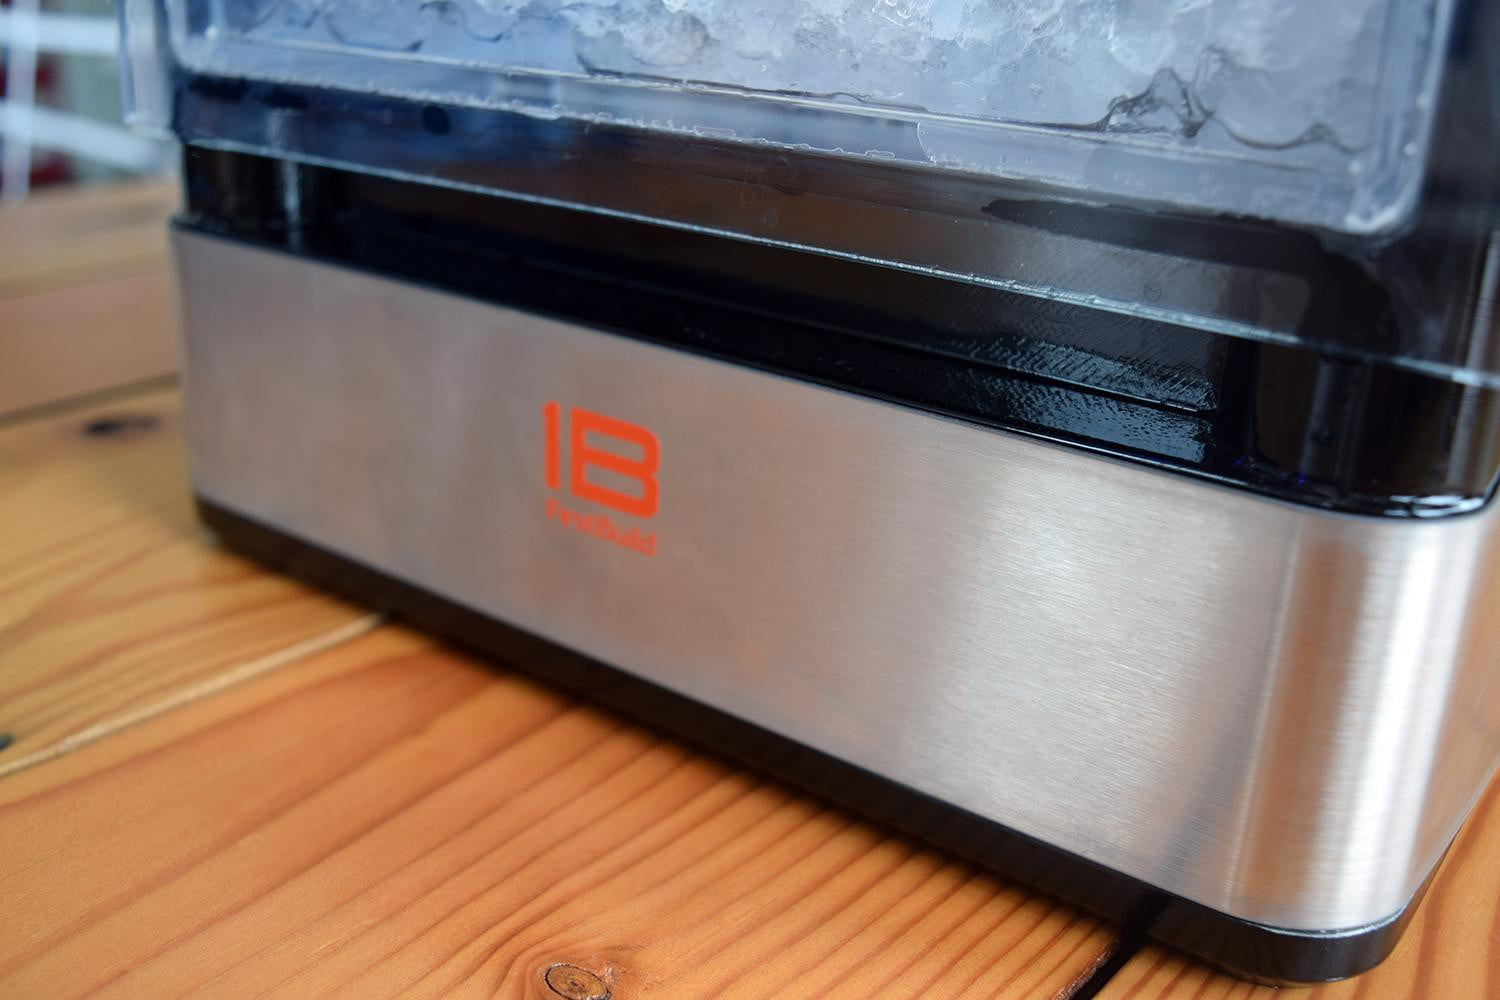 Countertop Nugget Ice Maker : Nugget ice is just the tip of the chewable iceberg for GE?s crazed ...